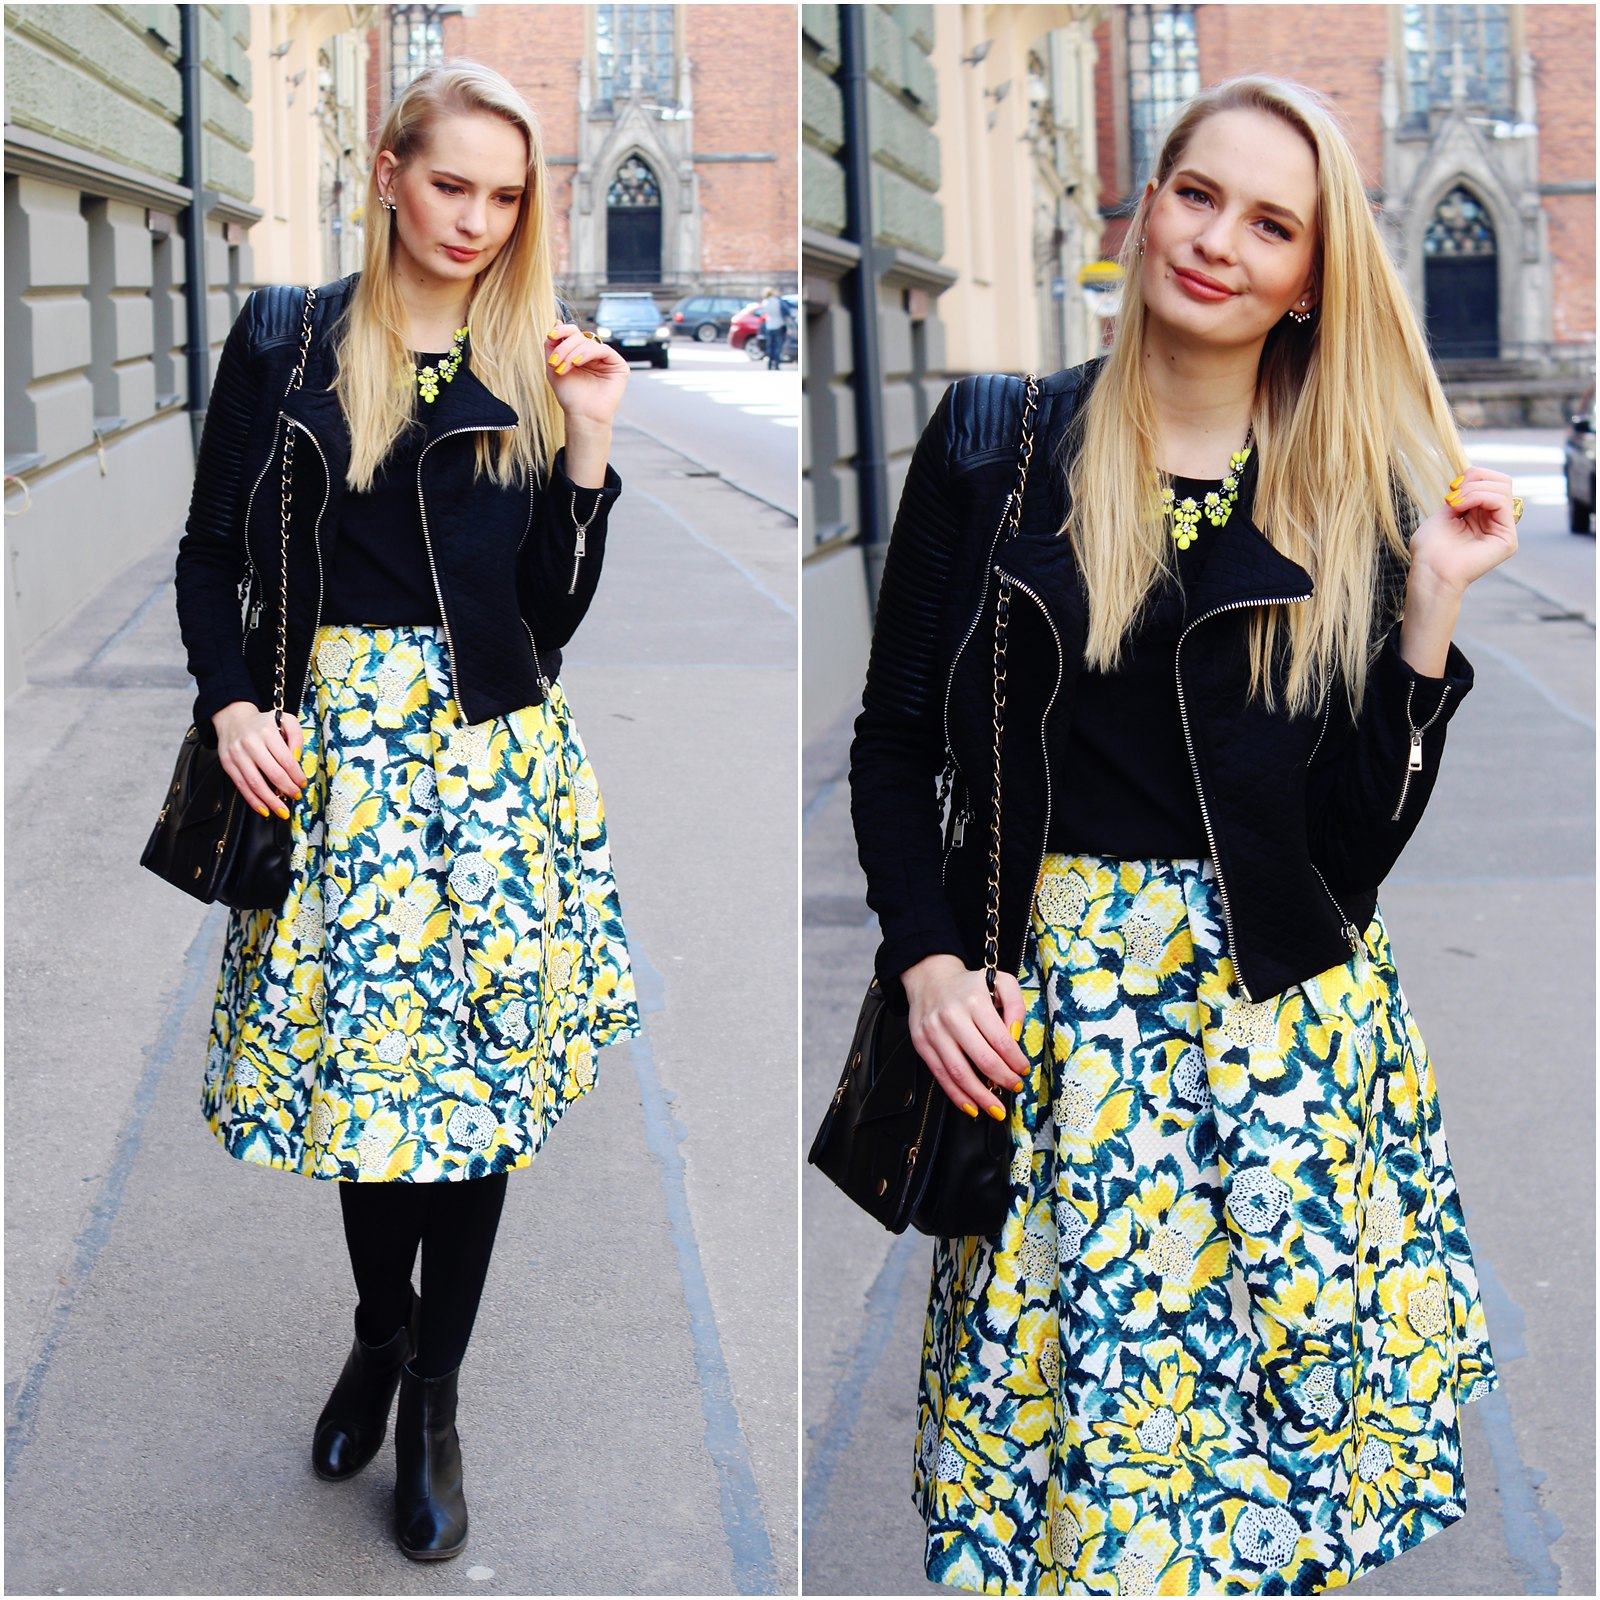 Riga fashion week outfit